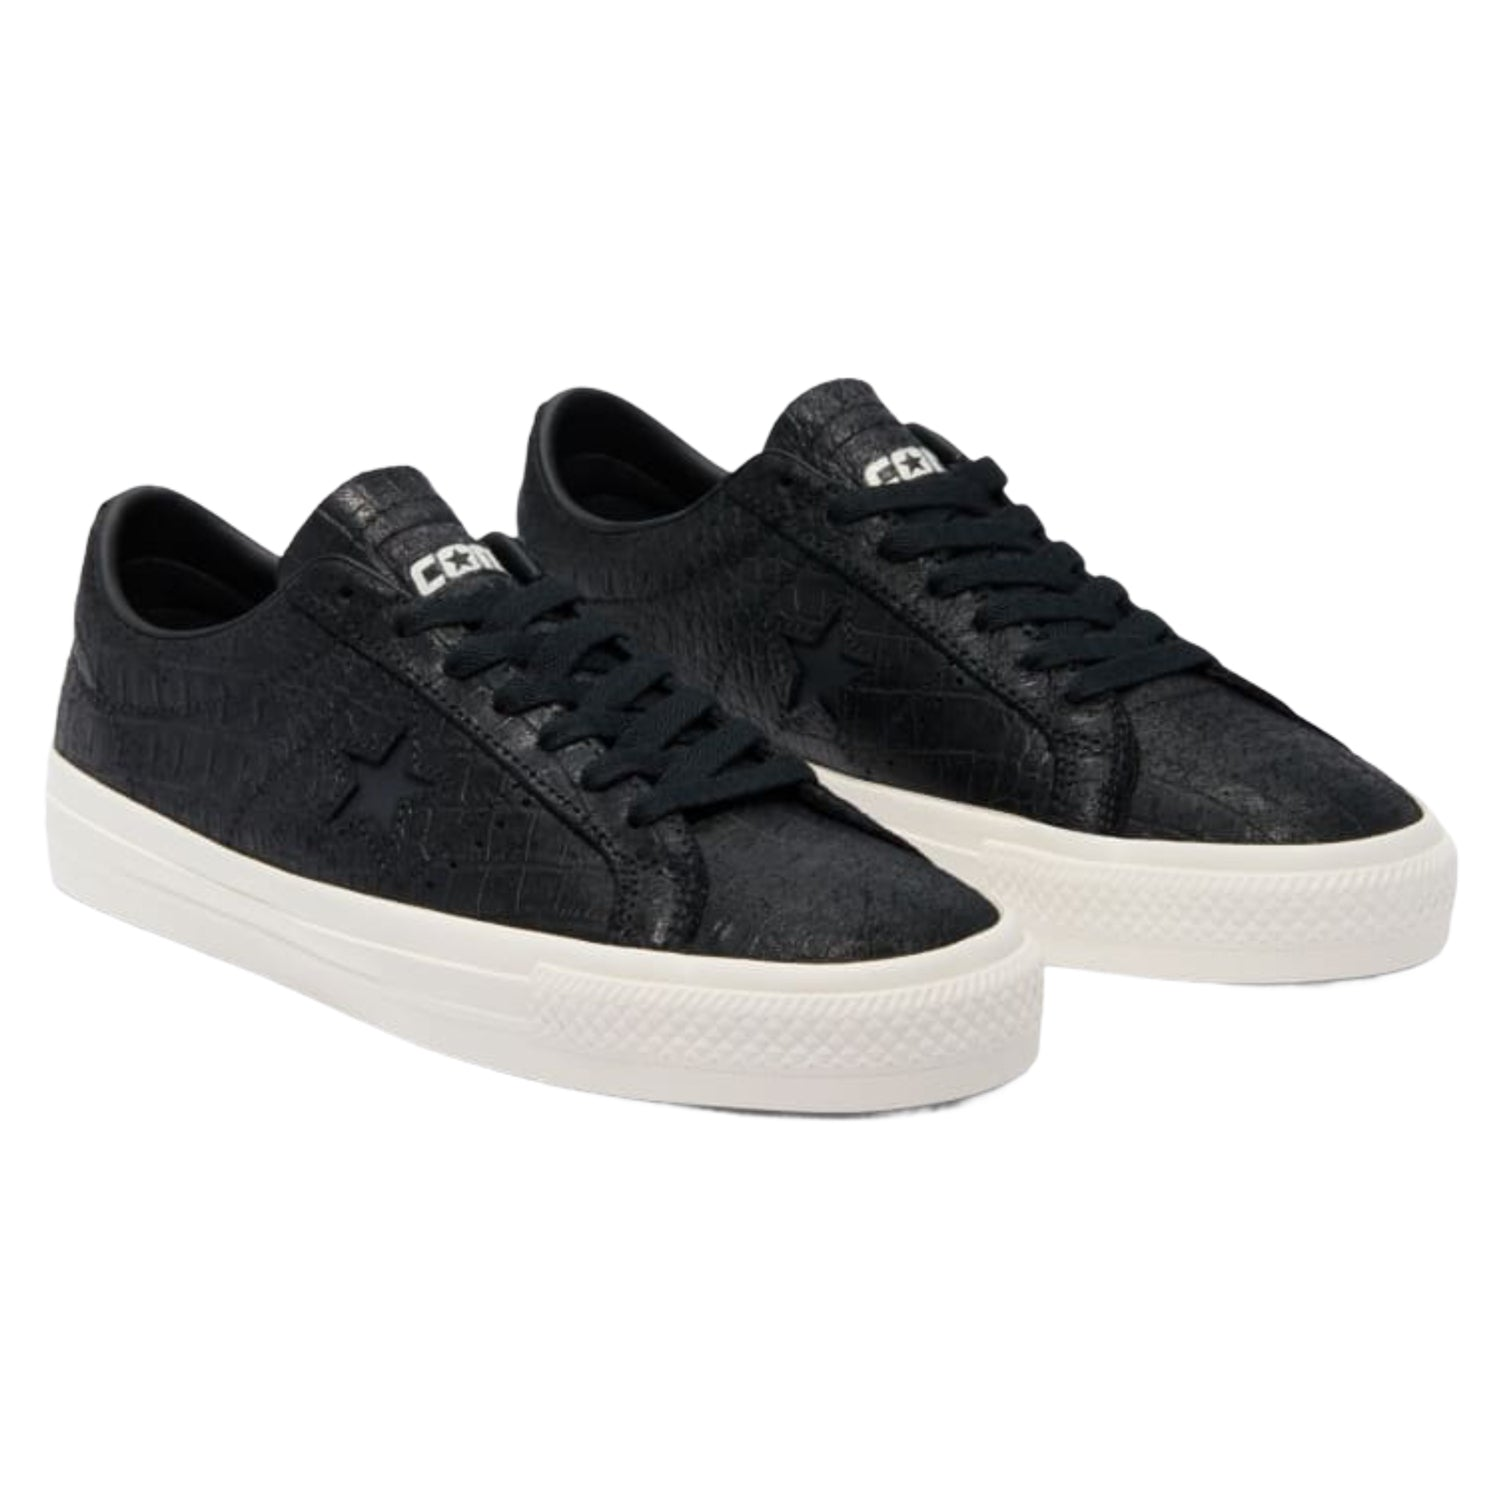 Converse CONS One Star Pro Black/Egret/Gum Honey